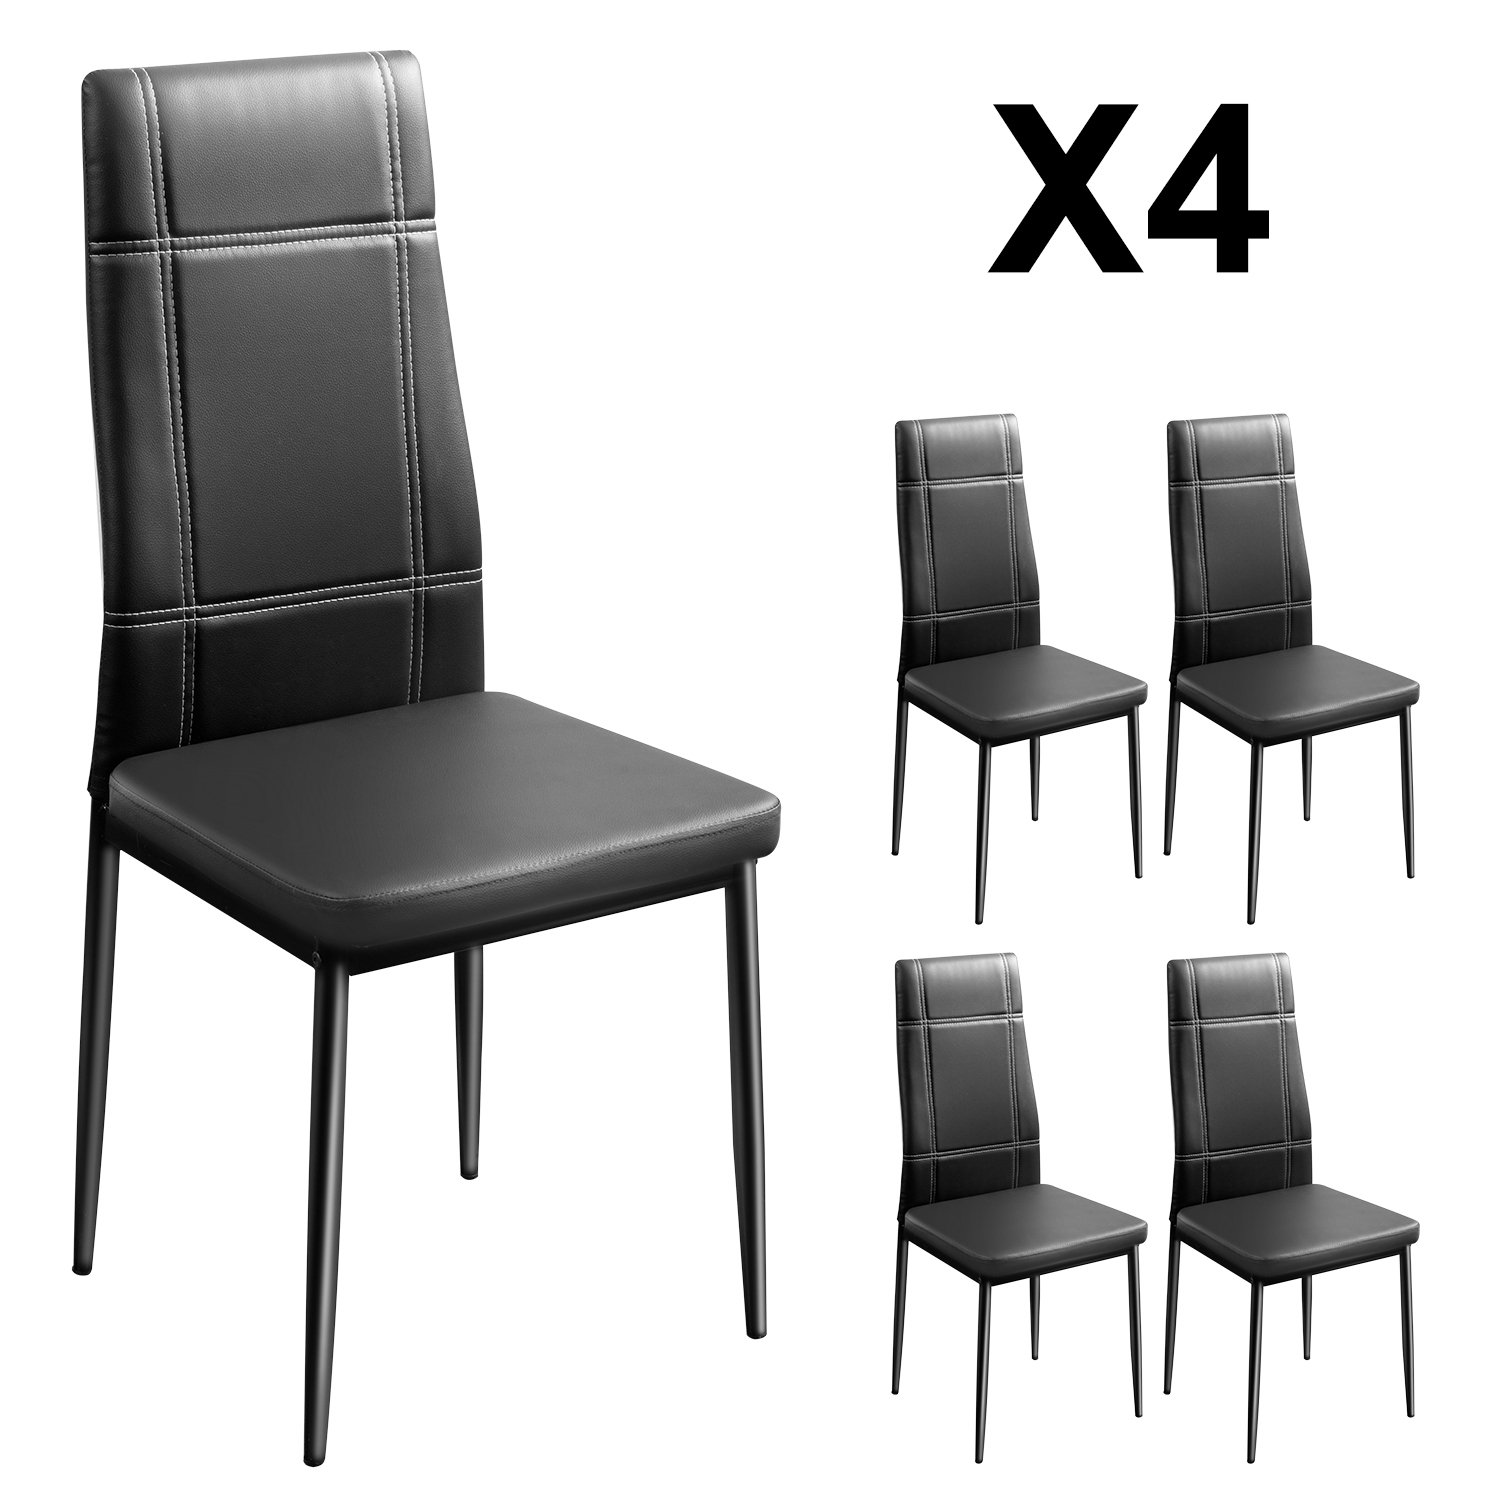 Merax Dining Chairs Set of 4 High Back Design with Heavy Duty Frame PU Leather Cushioned Seat